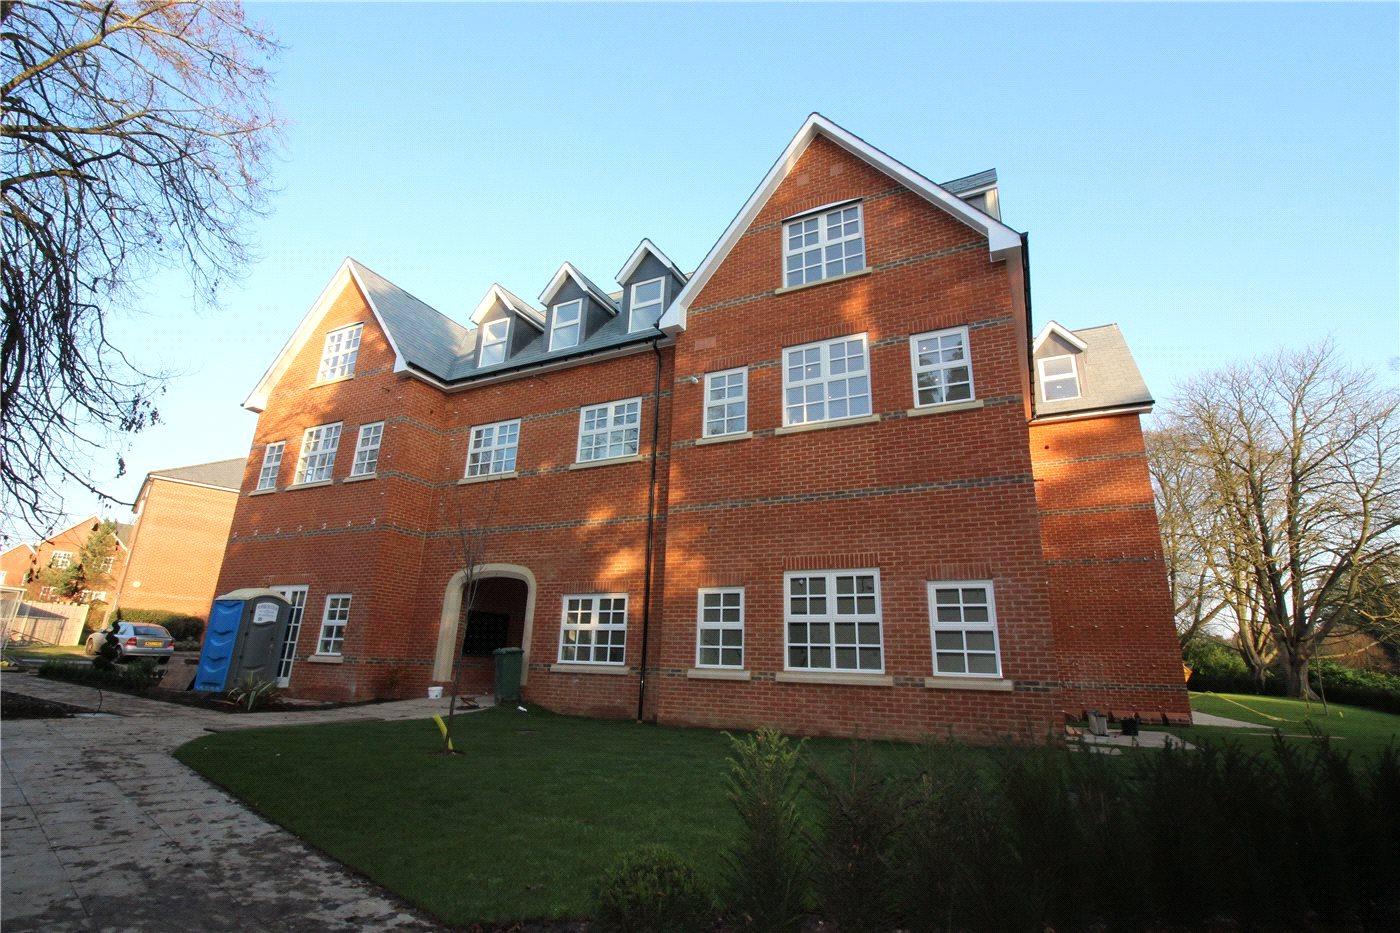 2 Bedrooms Flat for sale in Goldring Court, Napsbury Park, St Albans, AL2